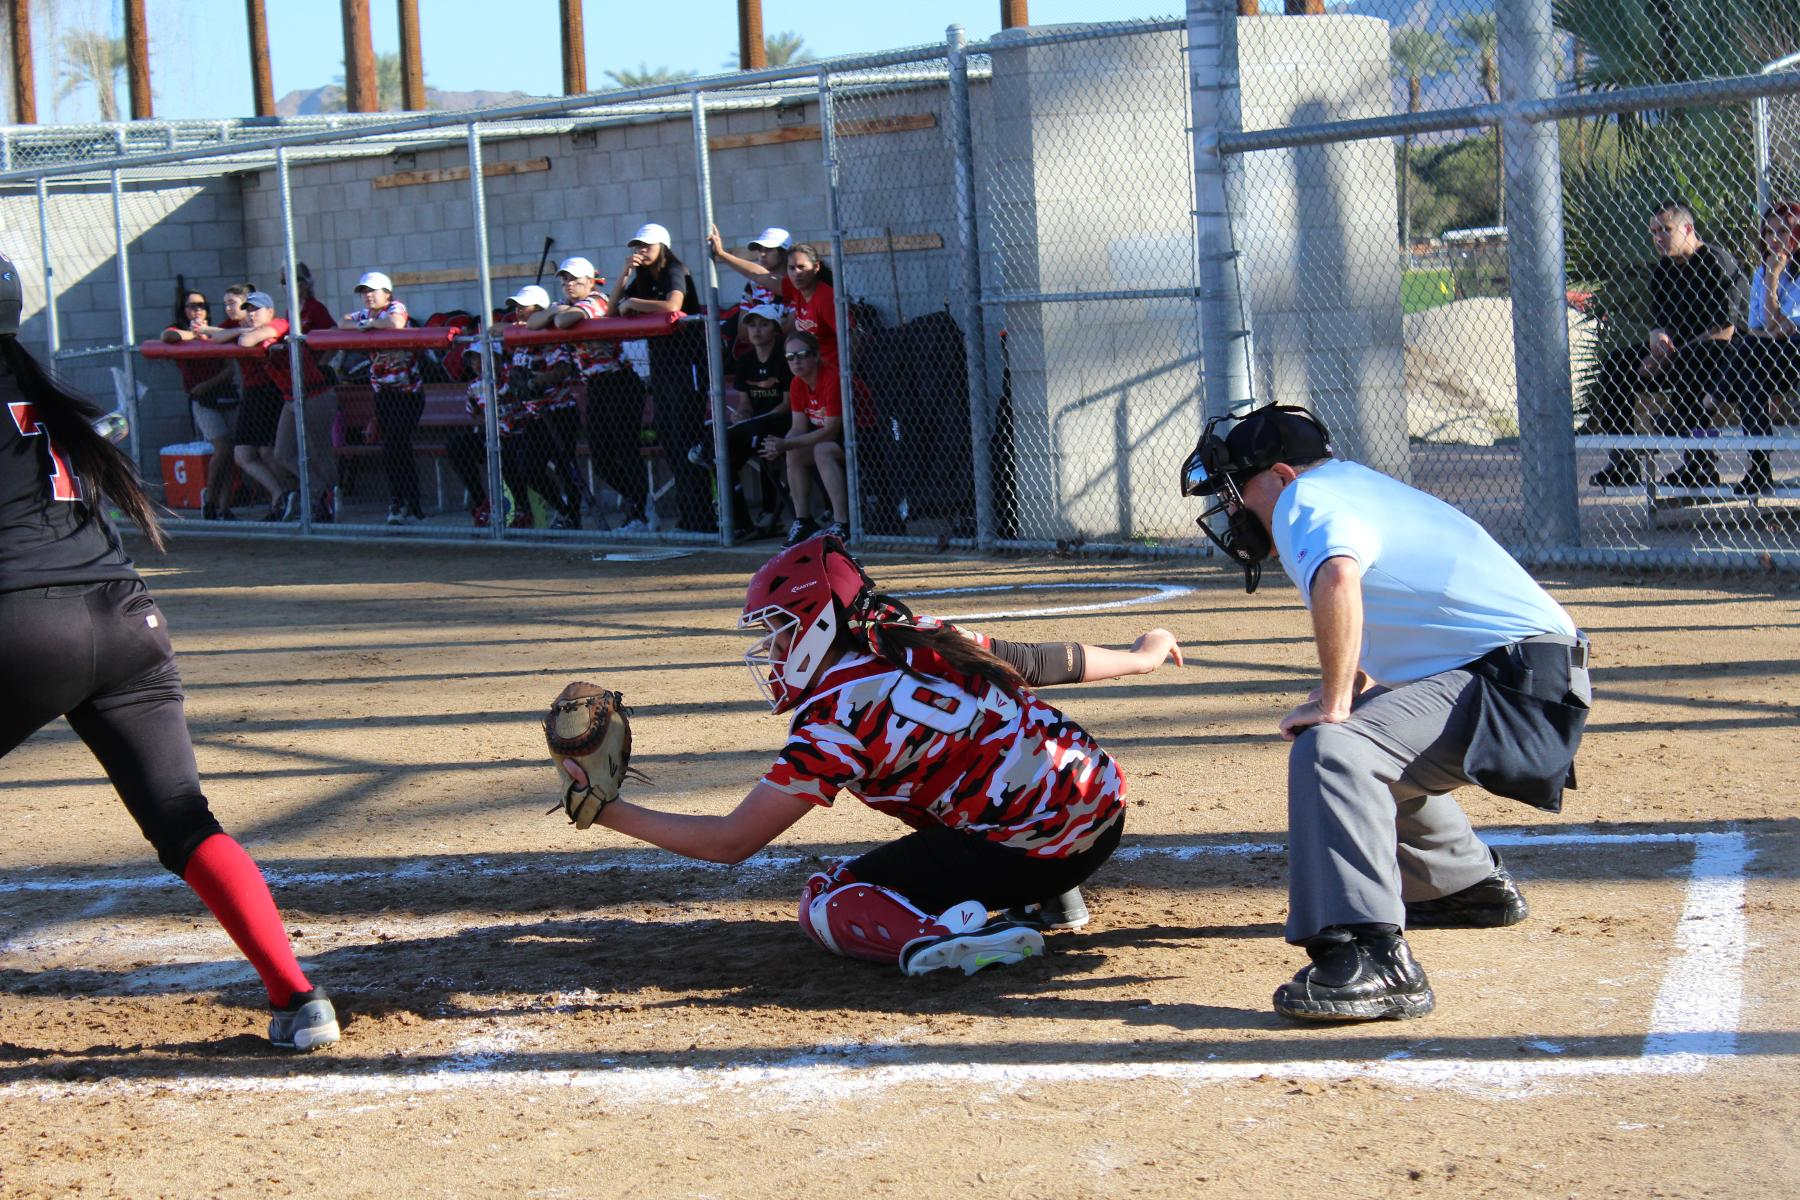 Softball Earns Second Consecutive Win in Defeating Barstow, 7-6